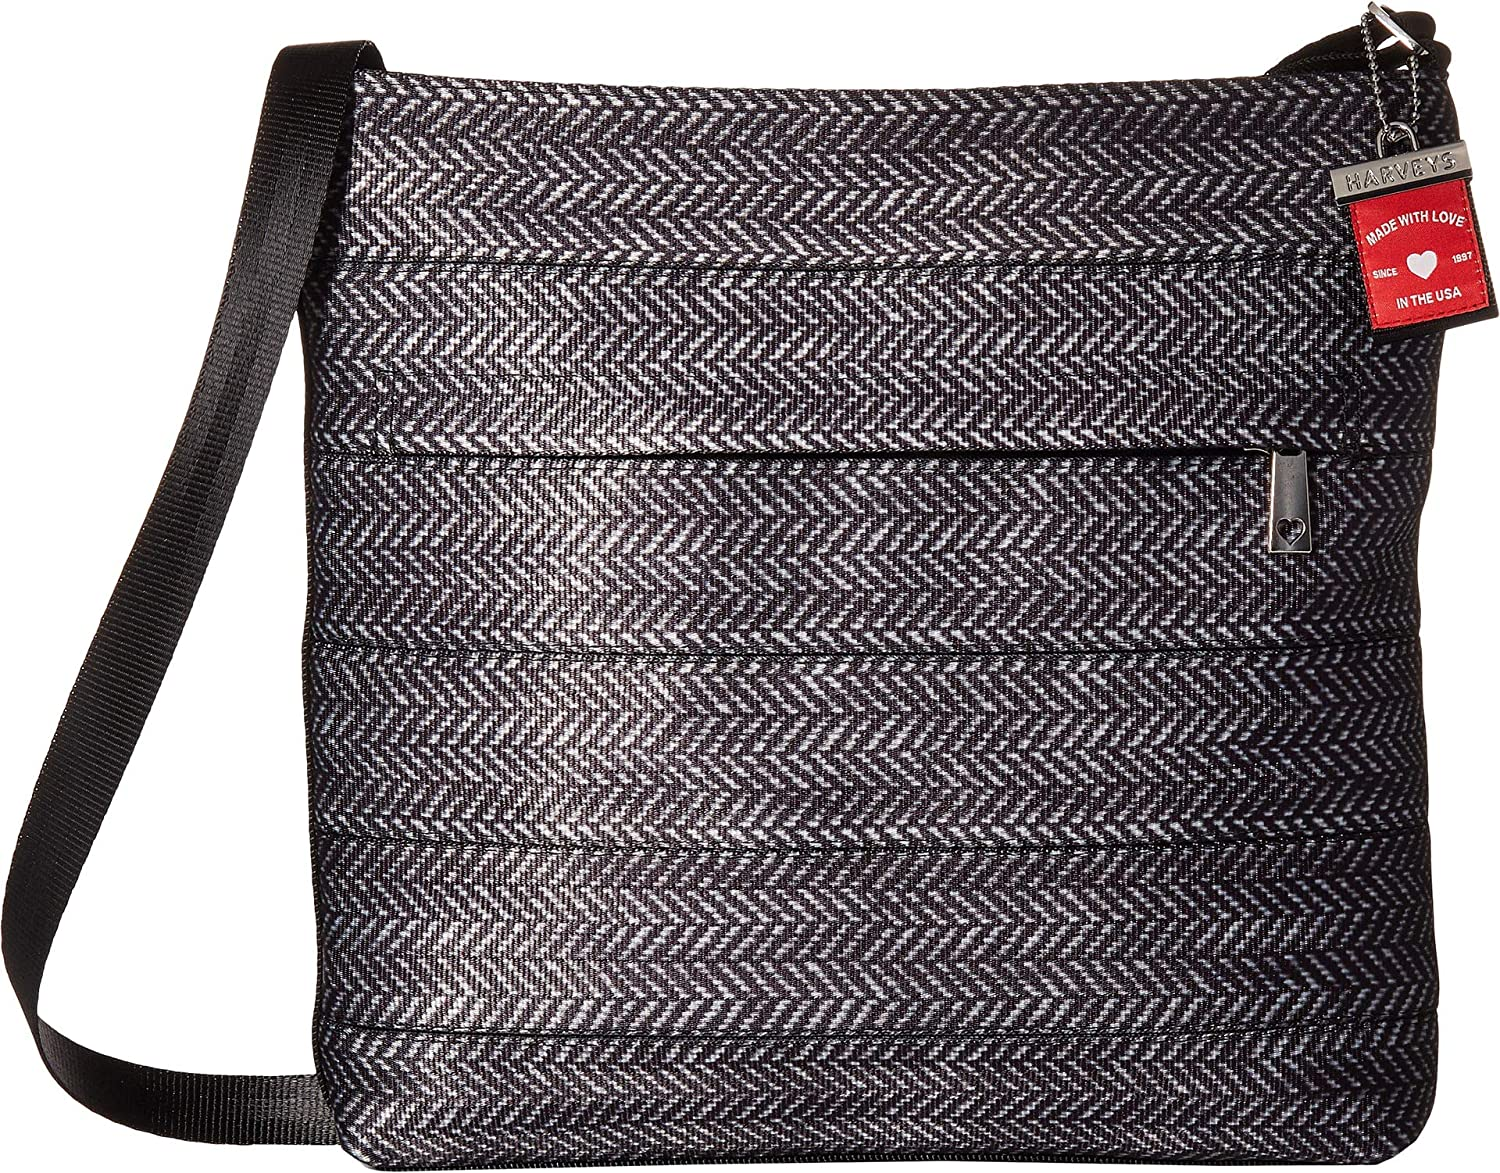 eb354ea751fc Harveys Seatbelt Bags Black Herringbone Streamline Crossbody Handbag   Amazon.co.uk  Shoes   Bags